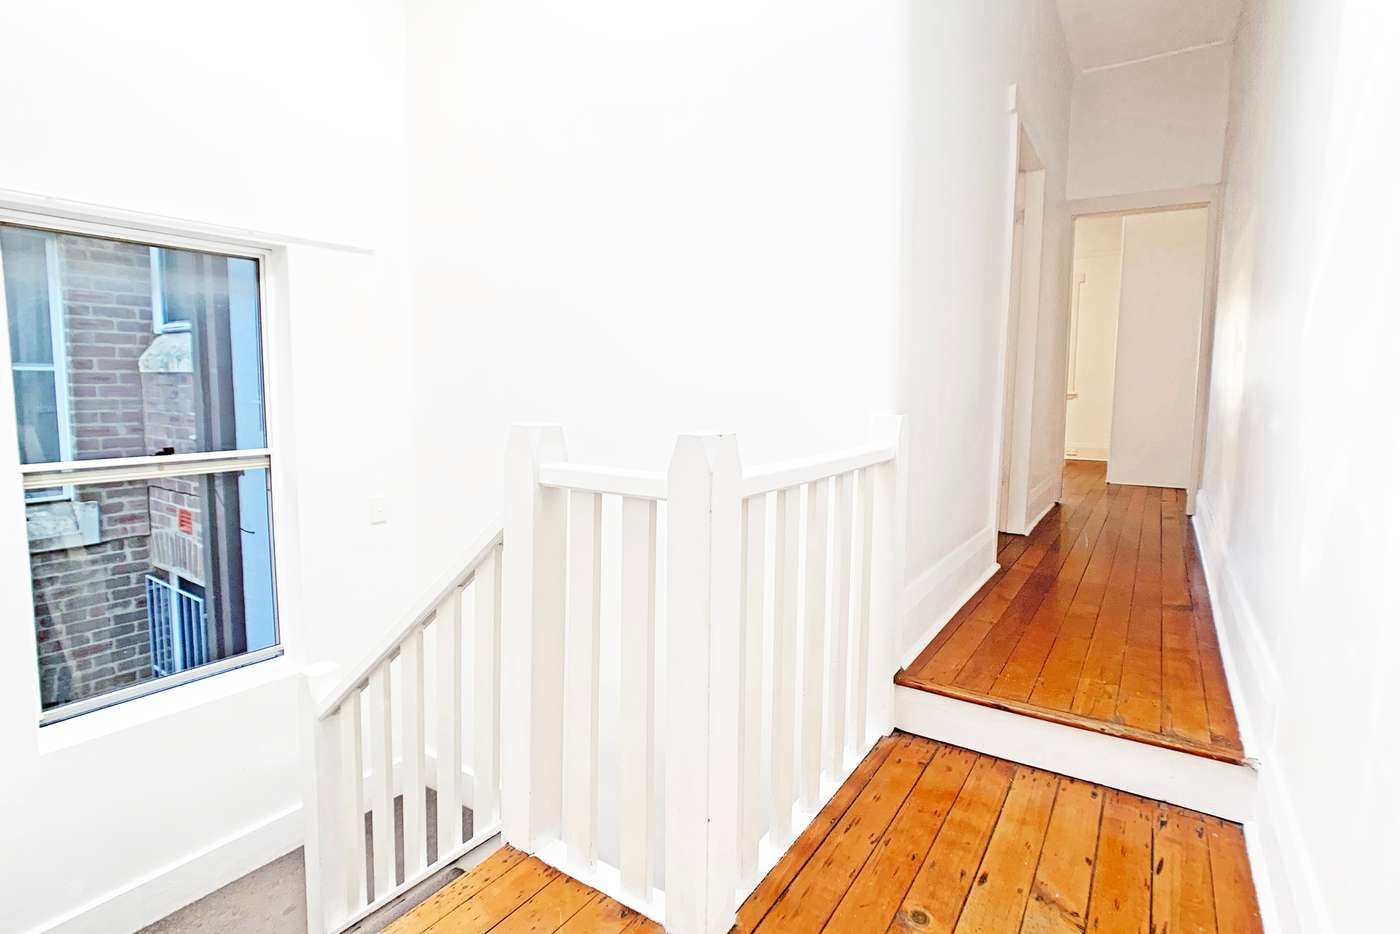 Main view of Homely terrace listing, 42 Burnie Street, Clovelly NSW 2031